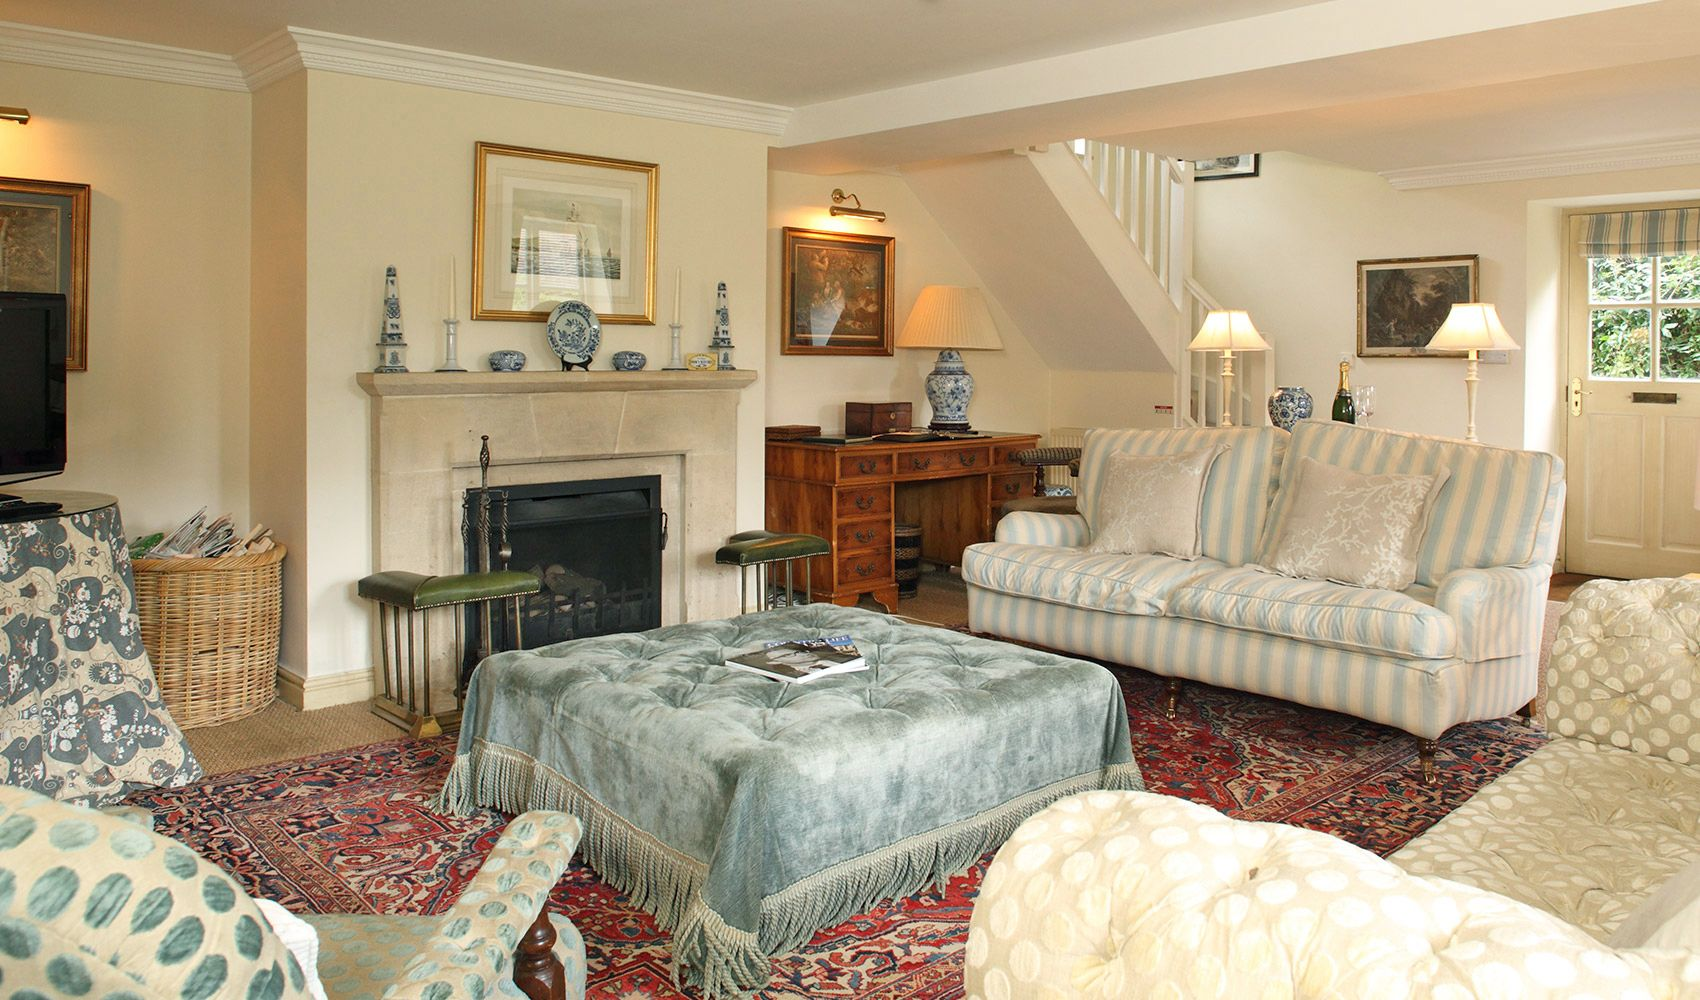 Ground floor: Peaceful and light drawing room with a large open fireplace